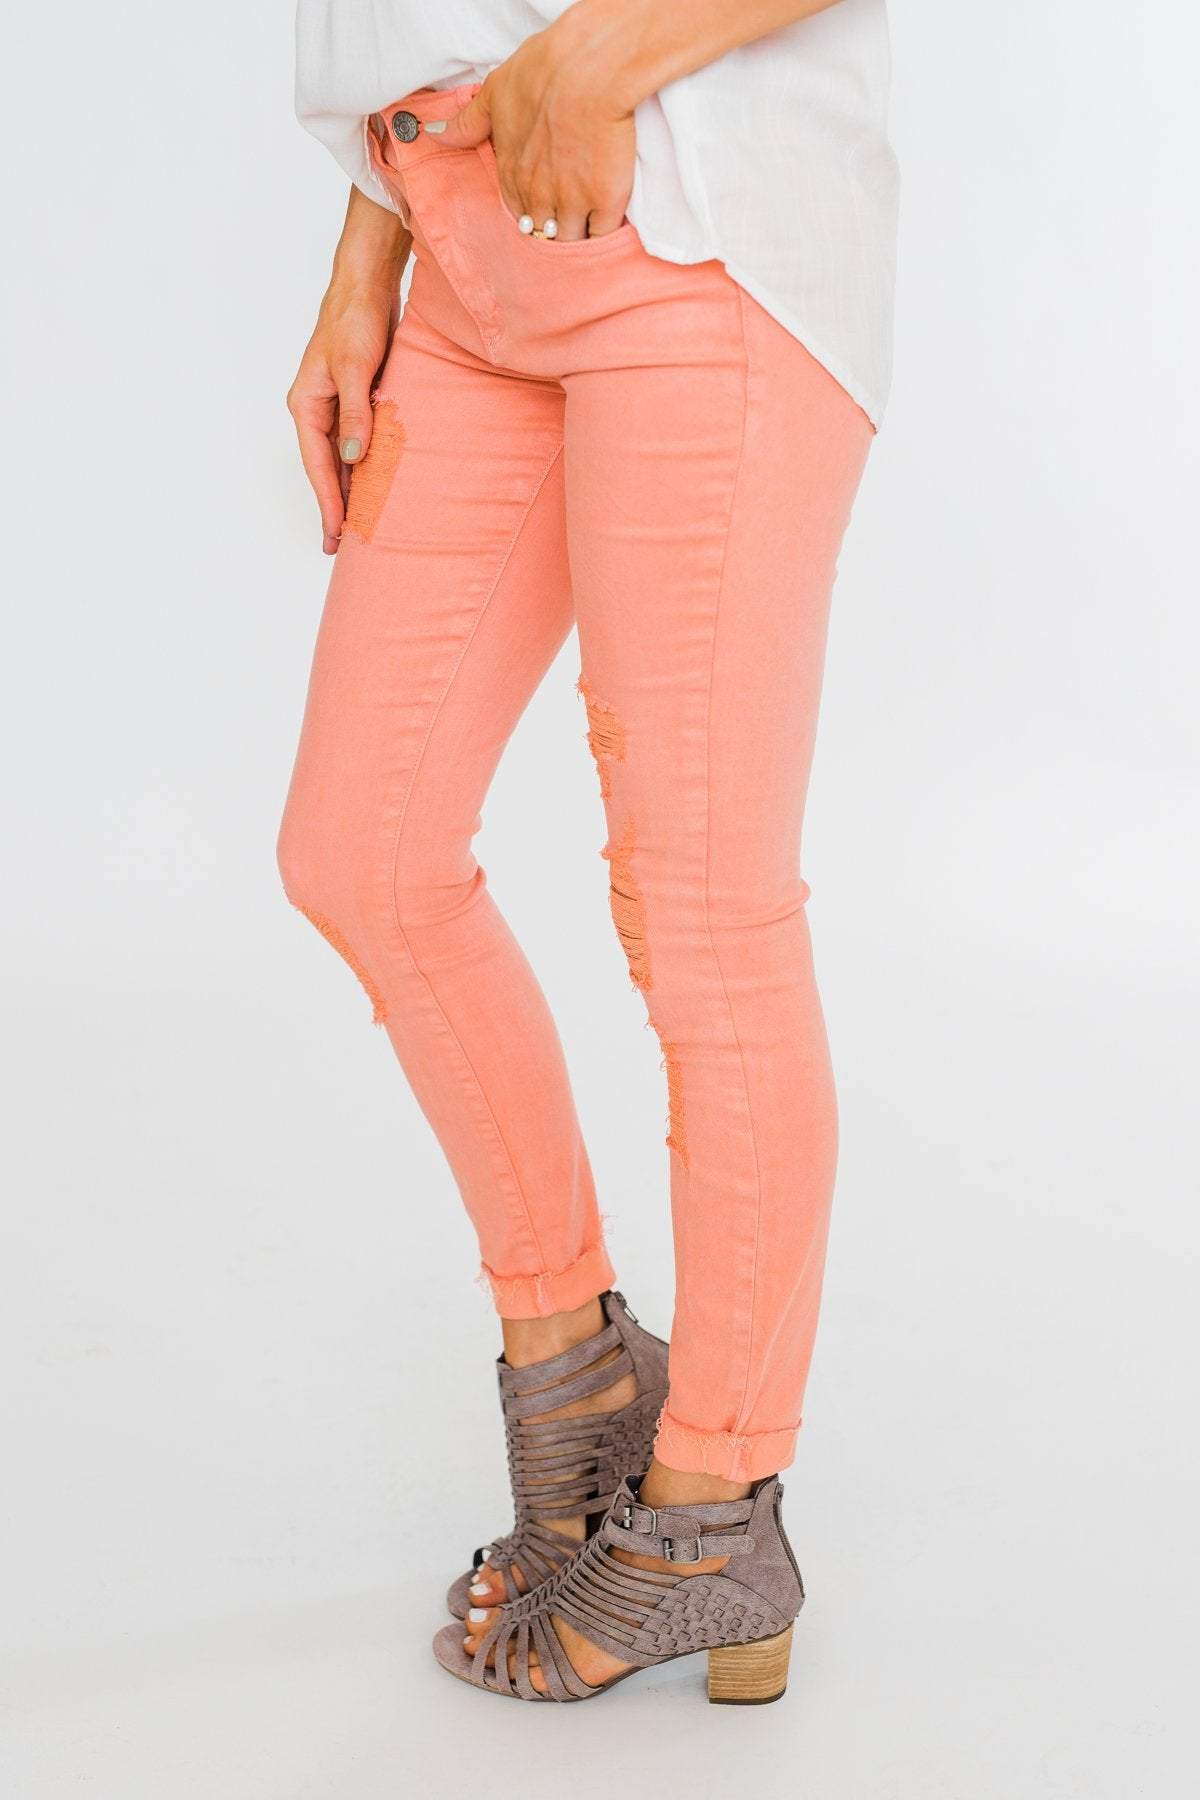 Cello Distressed Colored Skinny Jeans- Peach